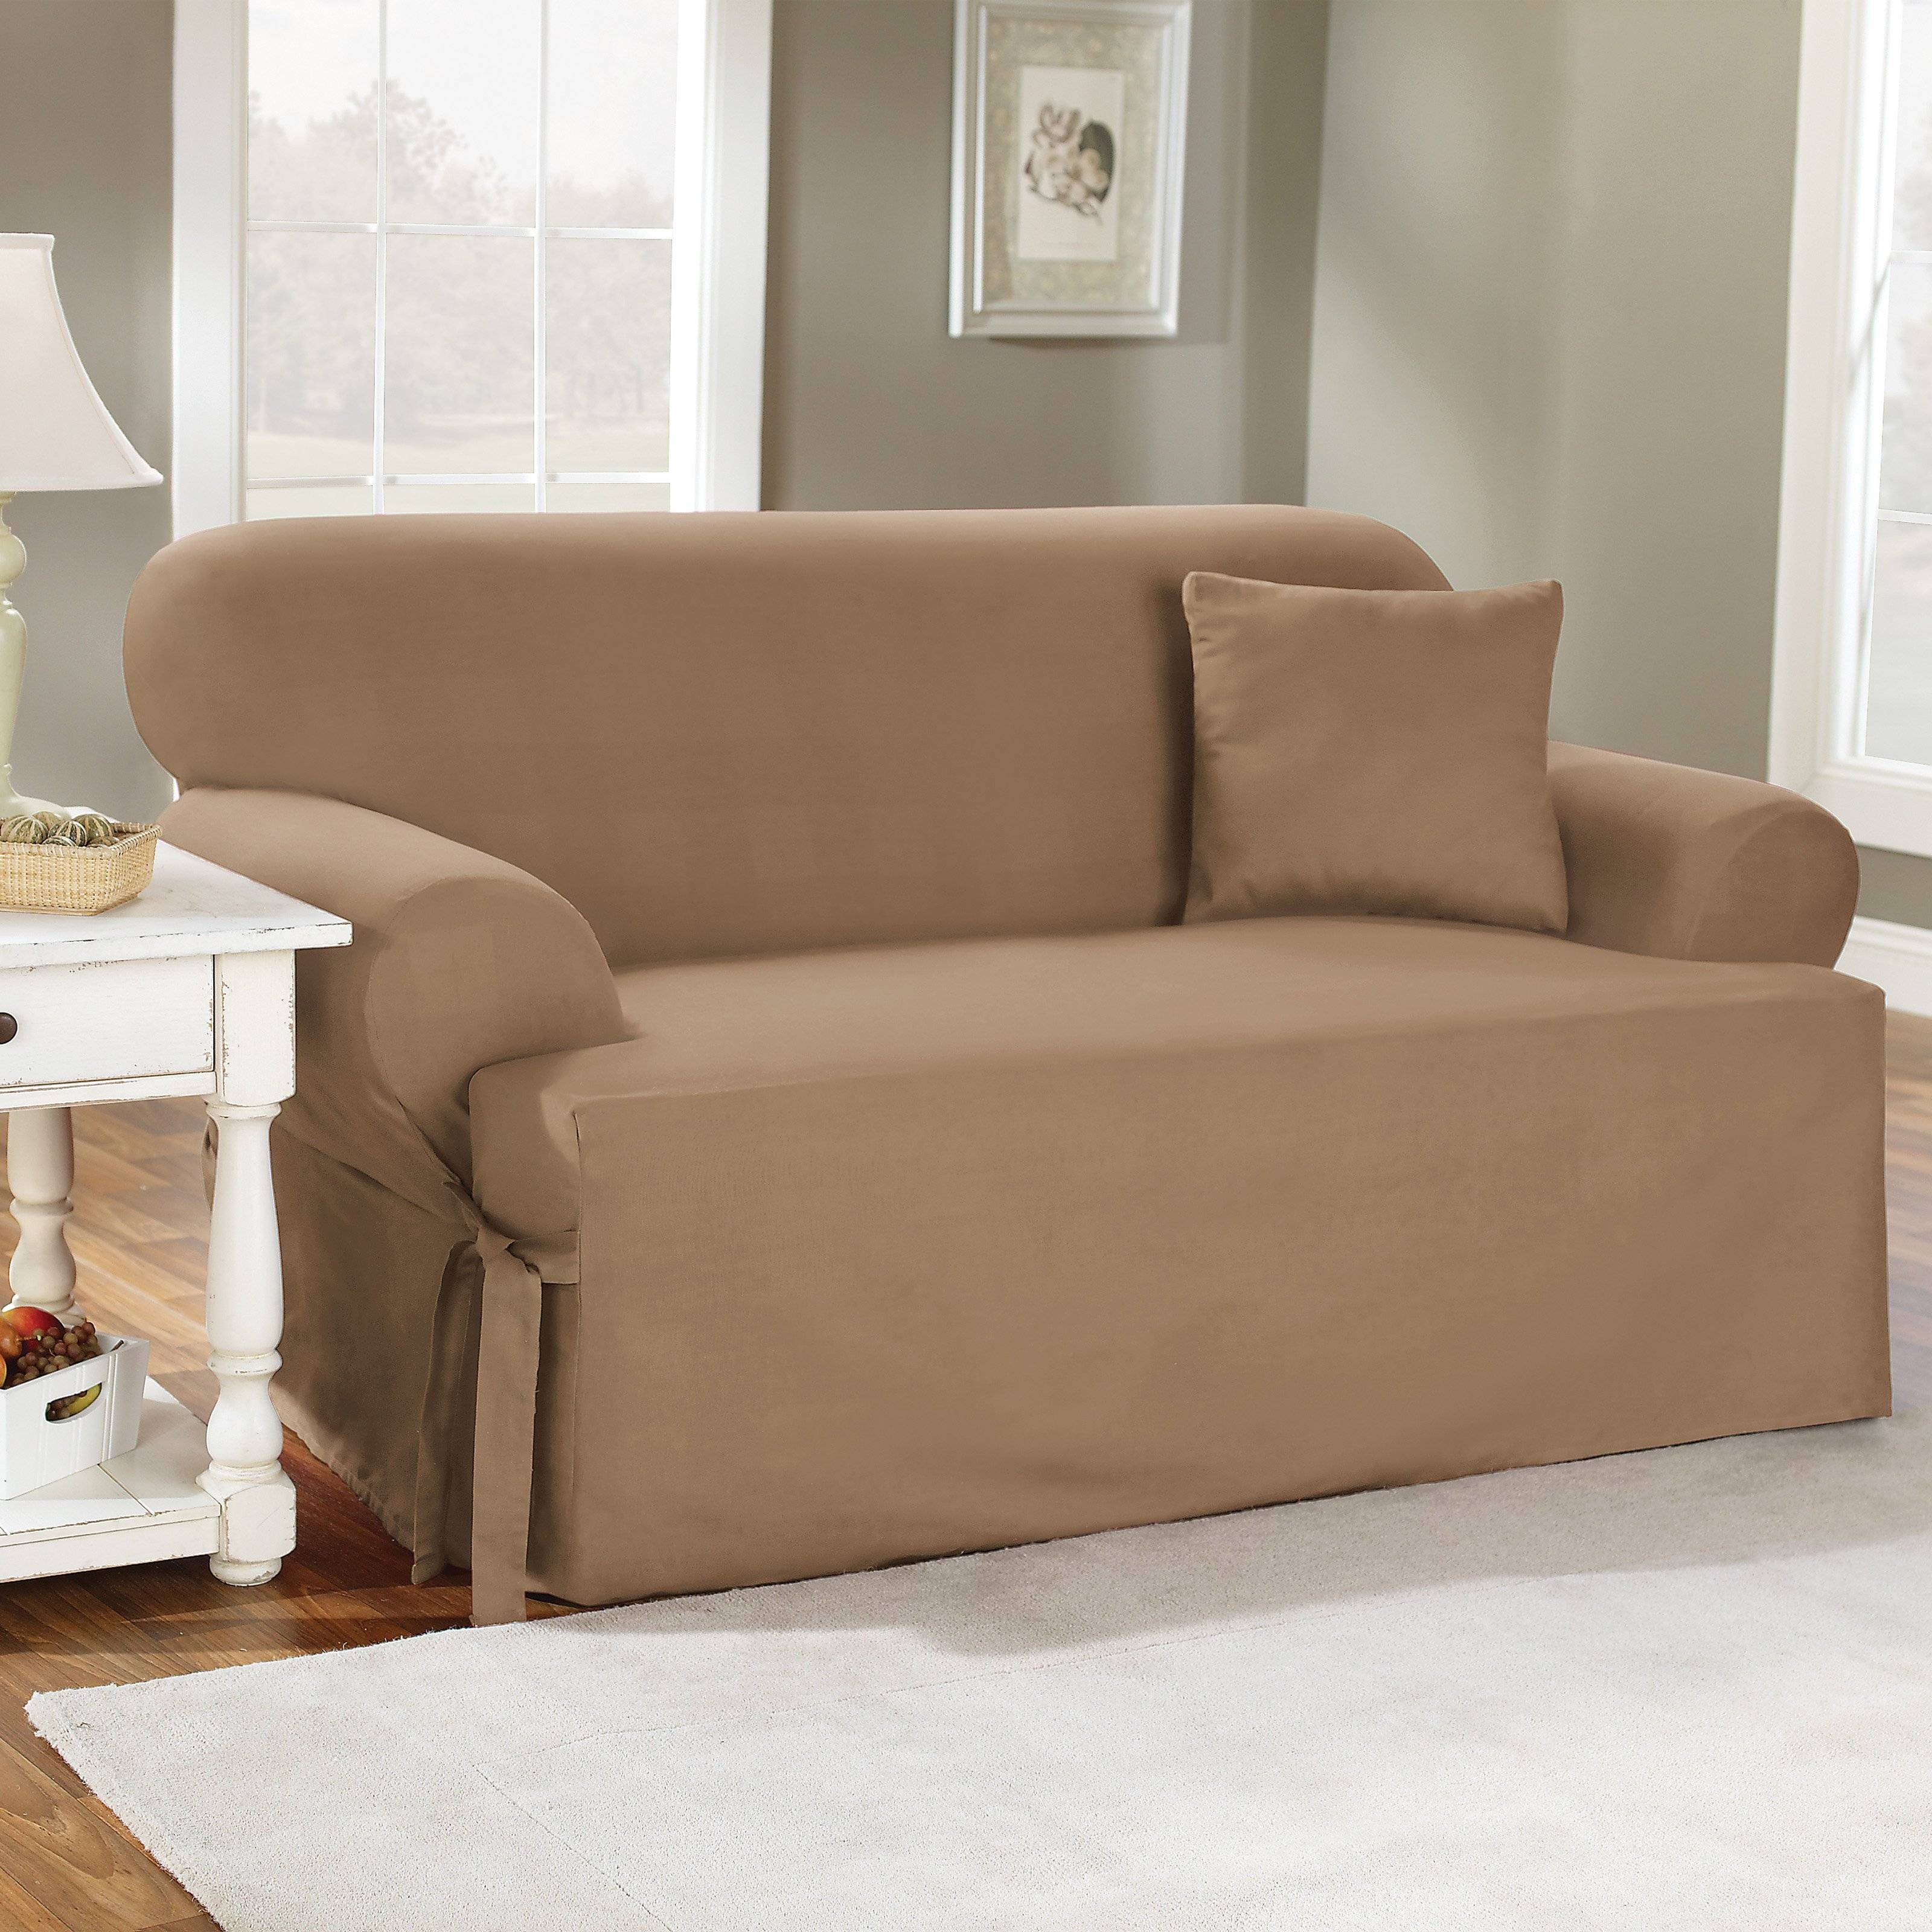 Furniture: Protect Your Lovely Furniture With Sure Fit Slipcovers pertaining to 2 Piece Sofa Covers (Image 13 of 30)